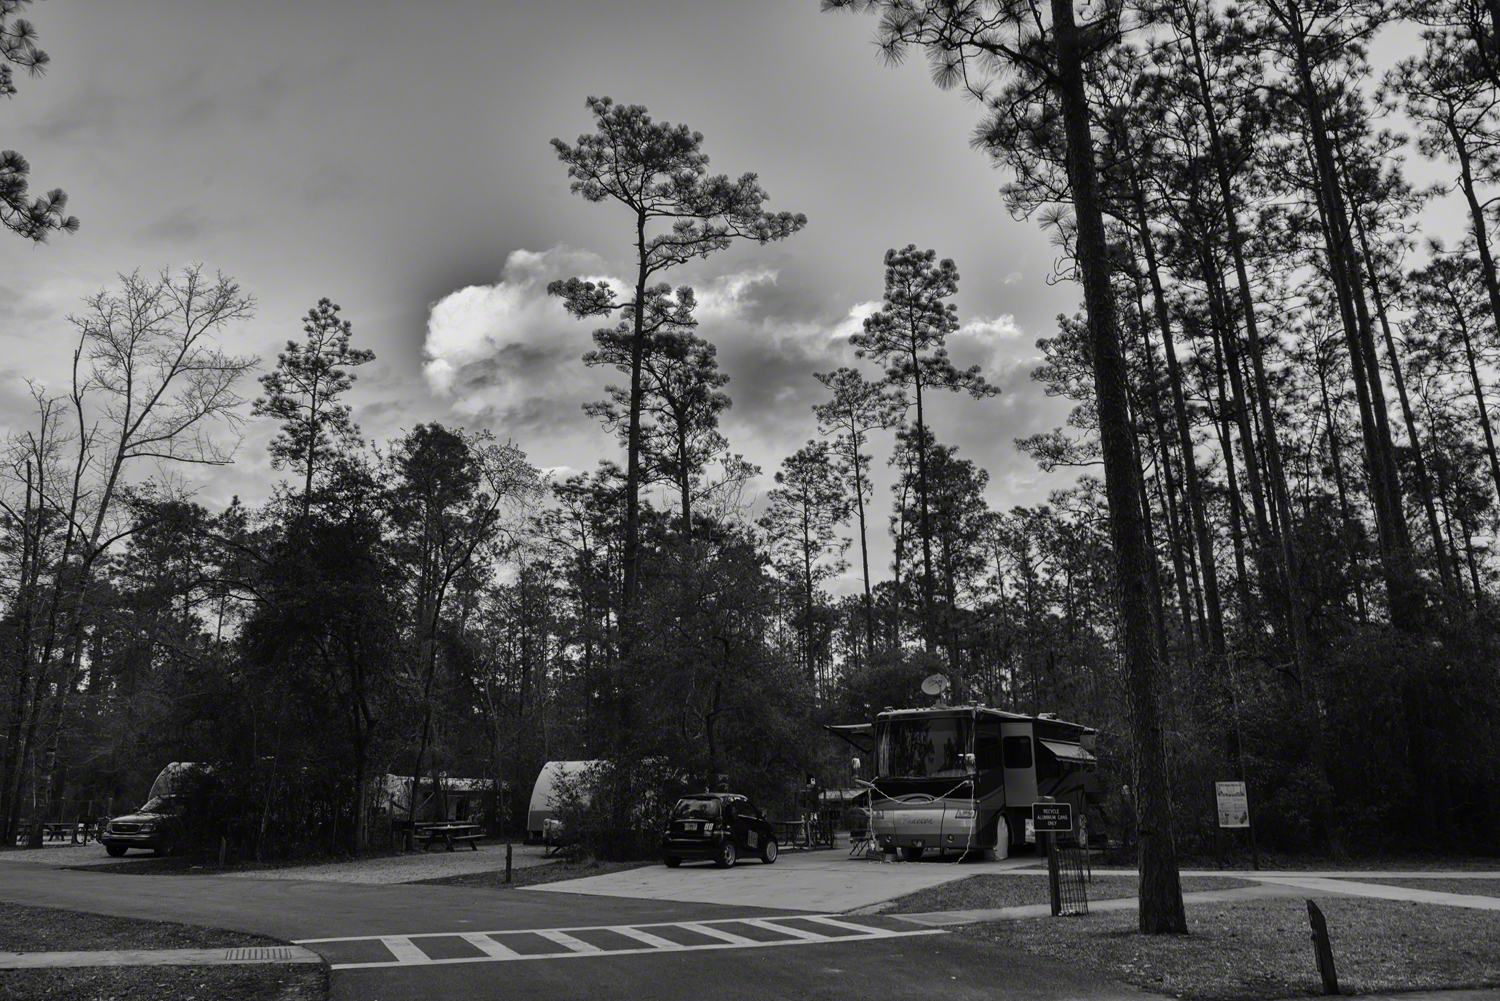 Blackwater River State Park Campground